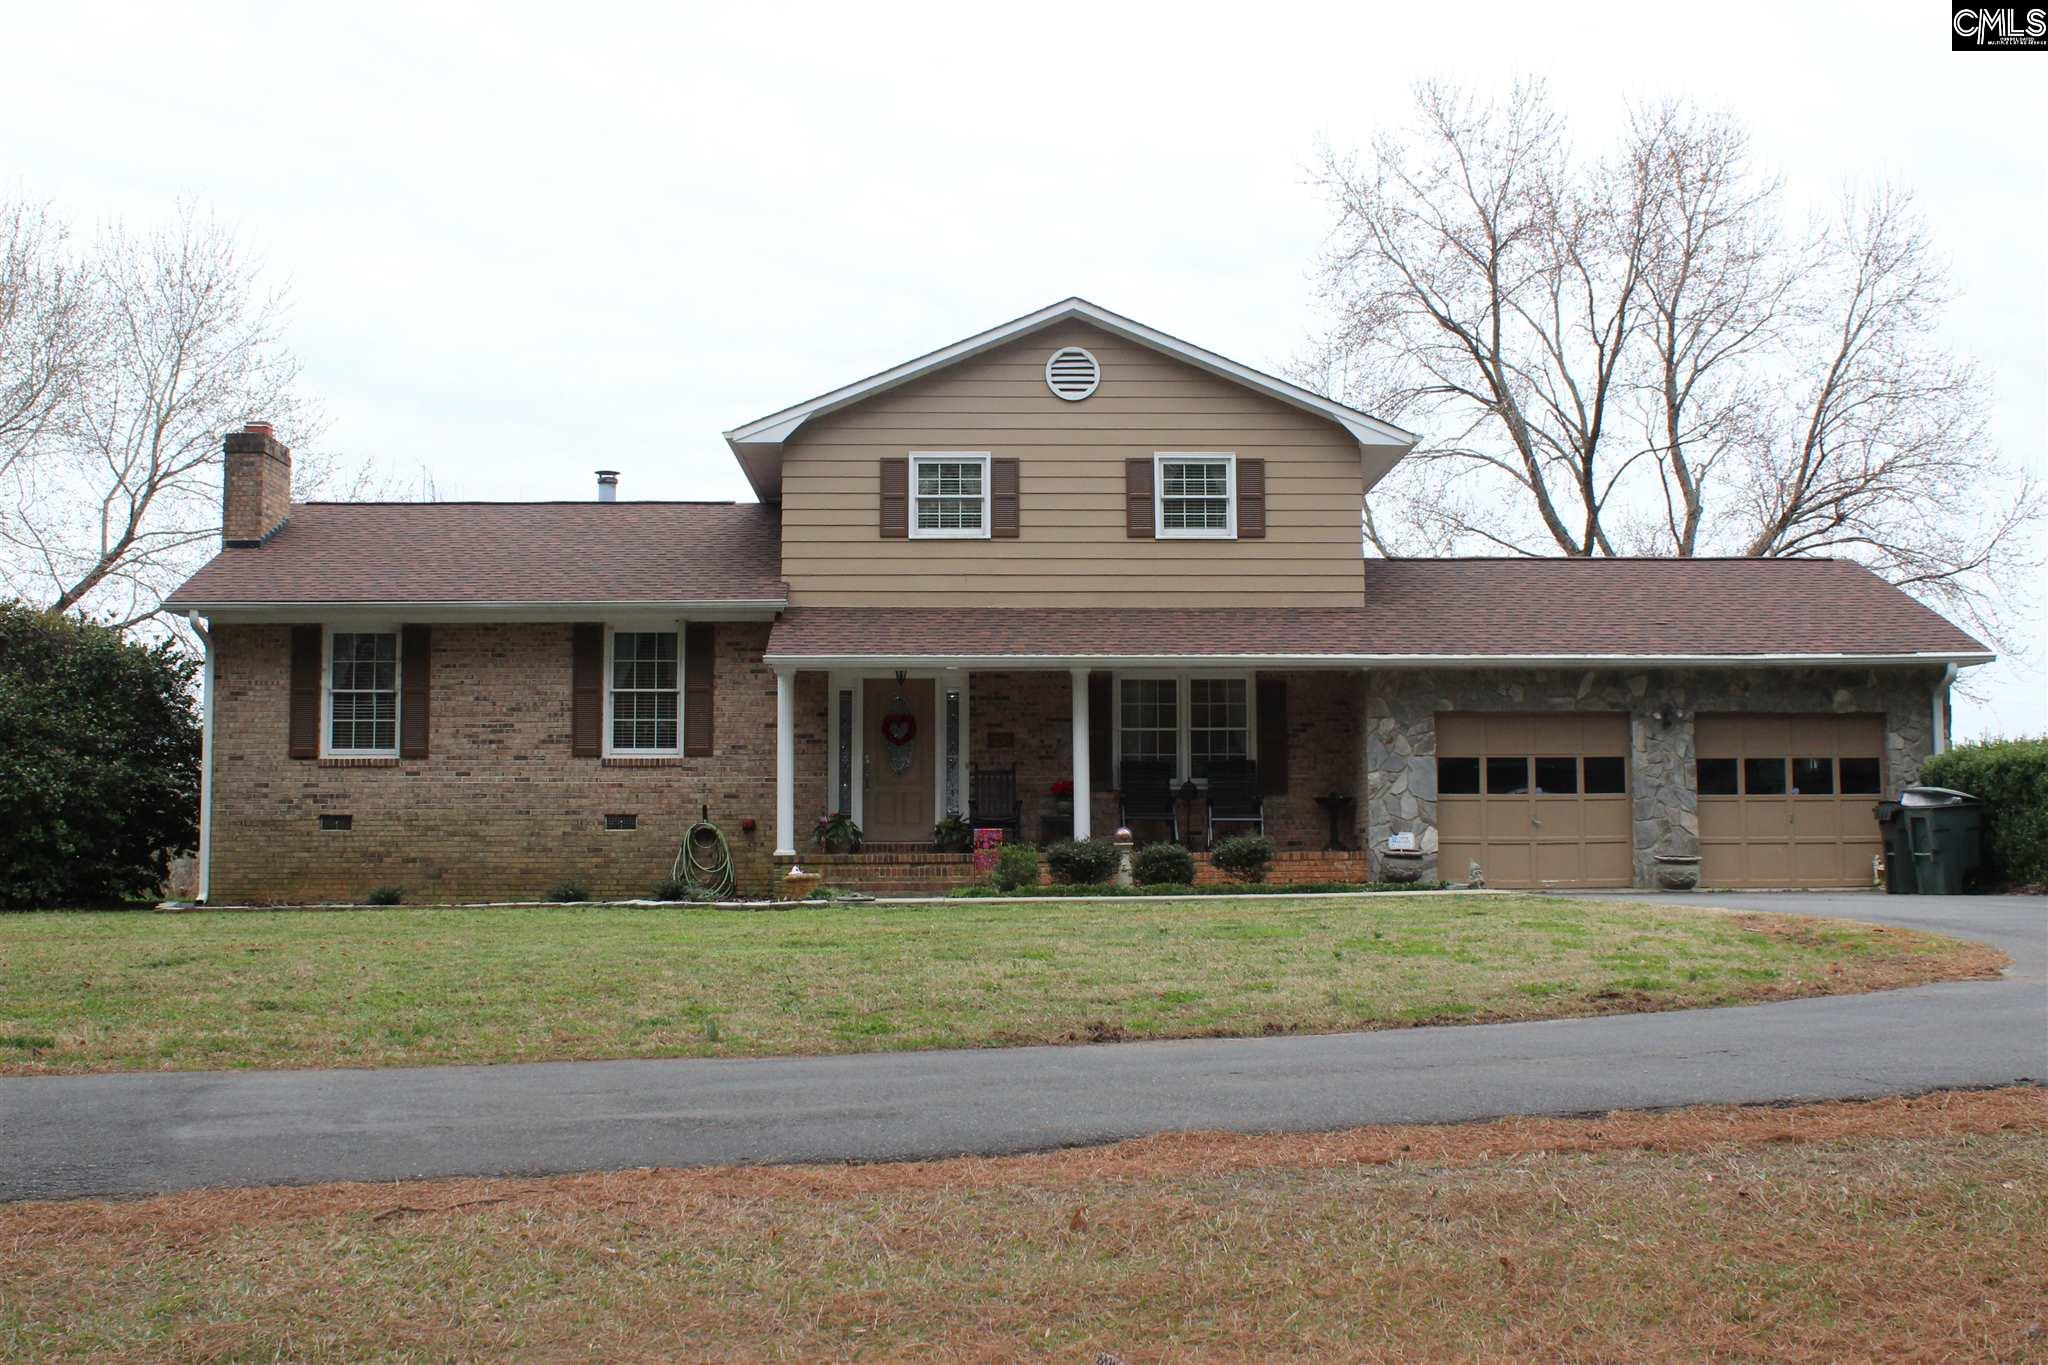 250 Sandifer York, SC 29745